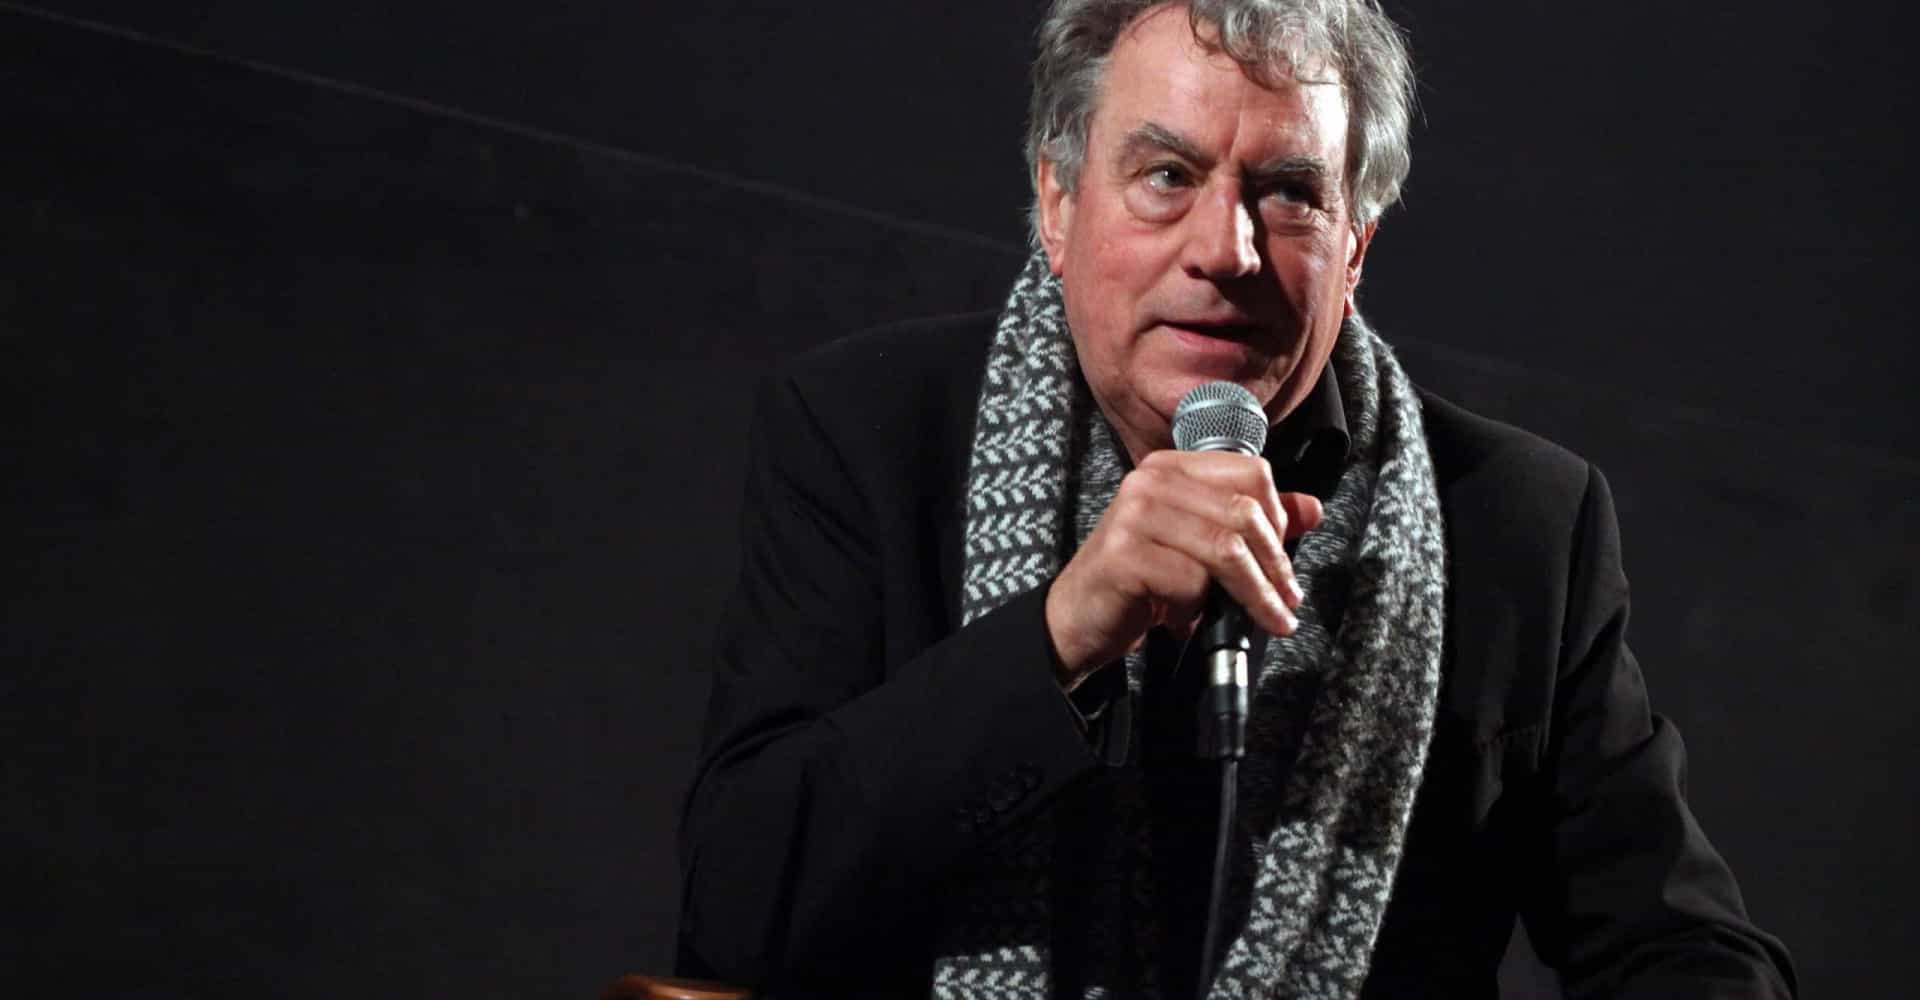 Remembering Terry Jones' work on 'Monty Python's Flying Circus'